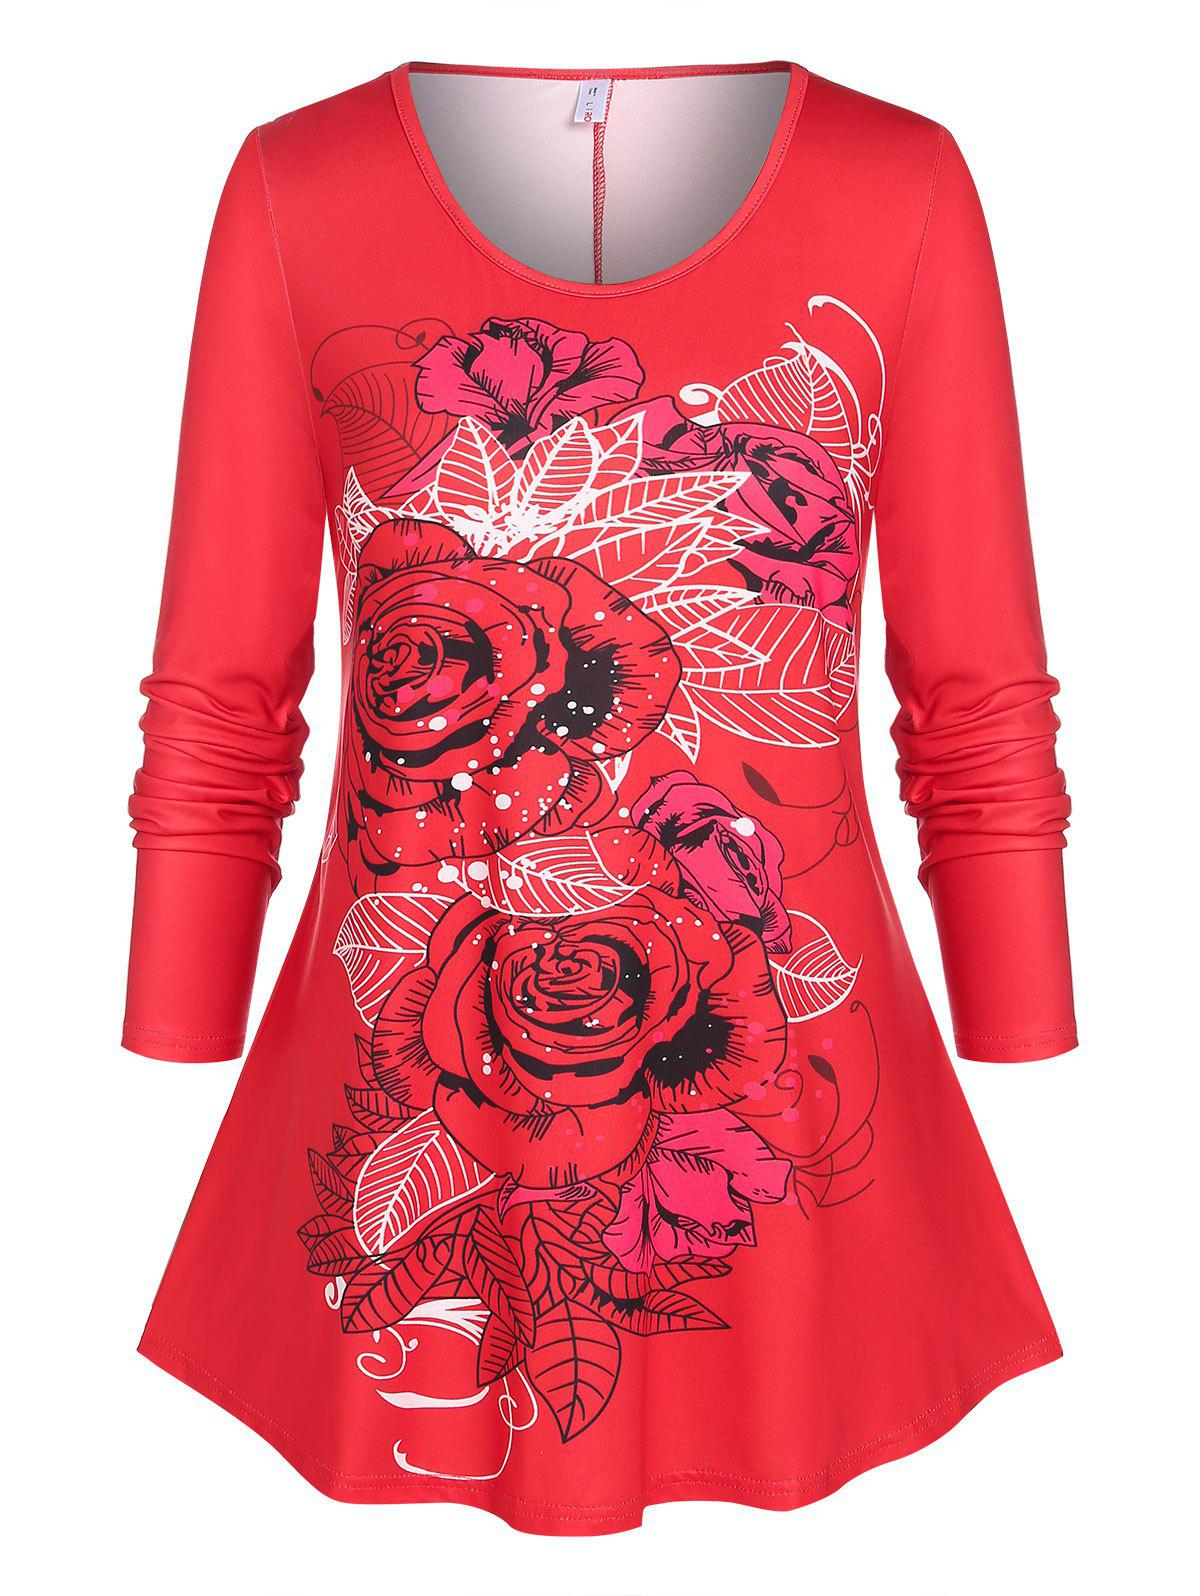 Plus Size Basic Floral Print T-shirt - RED 5X